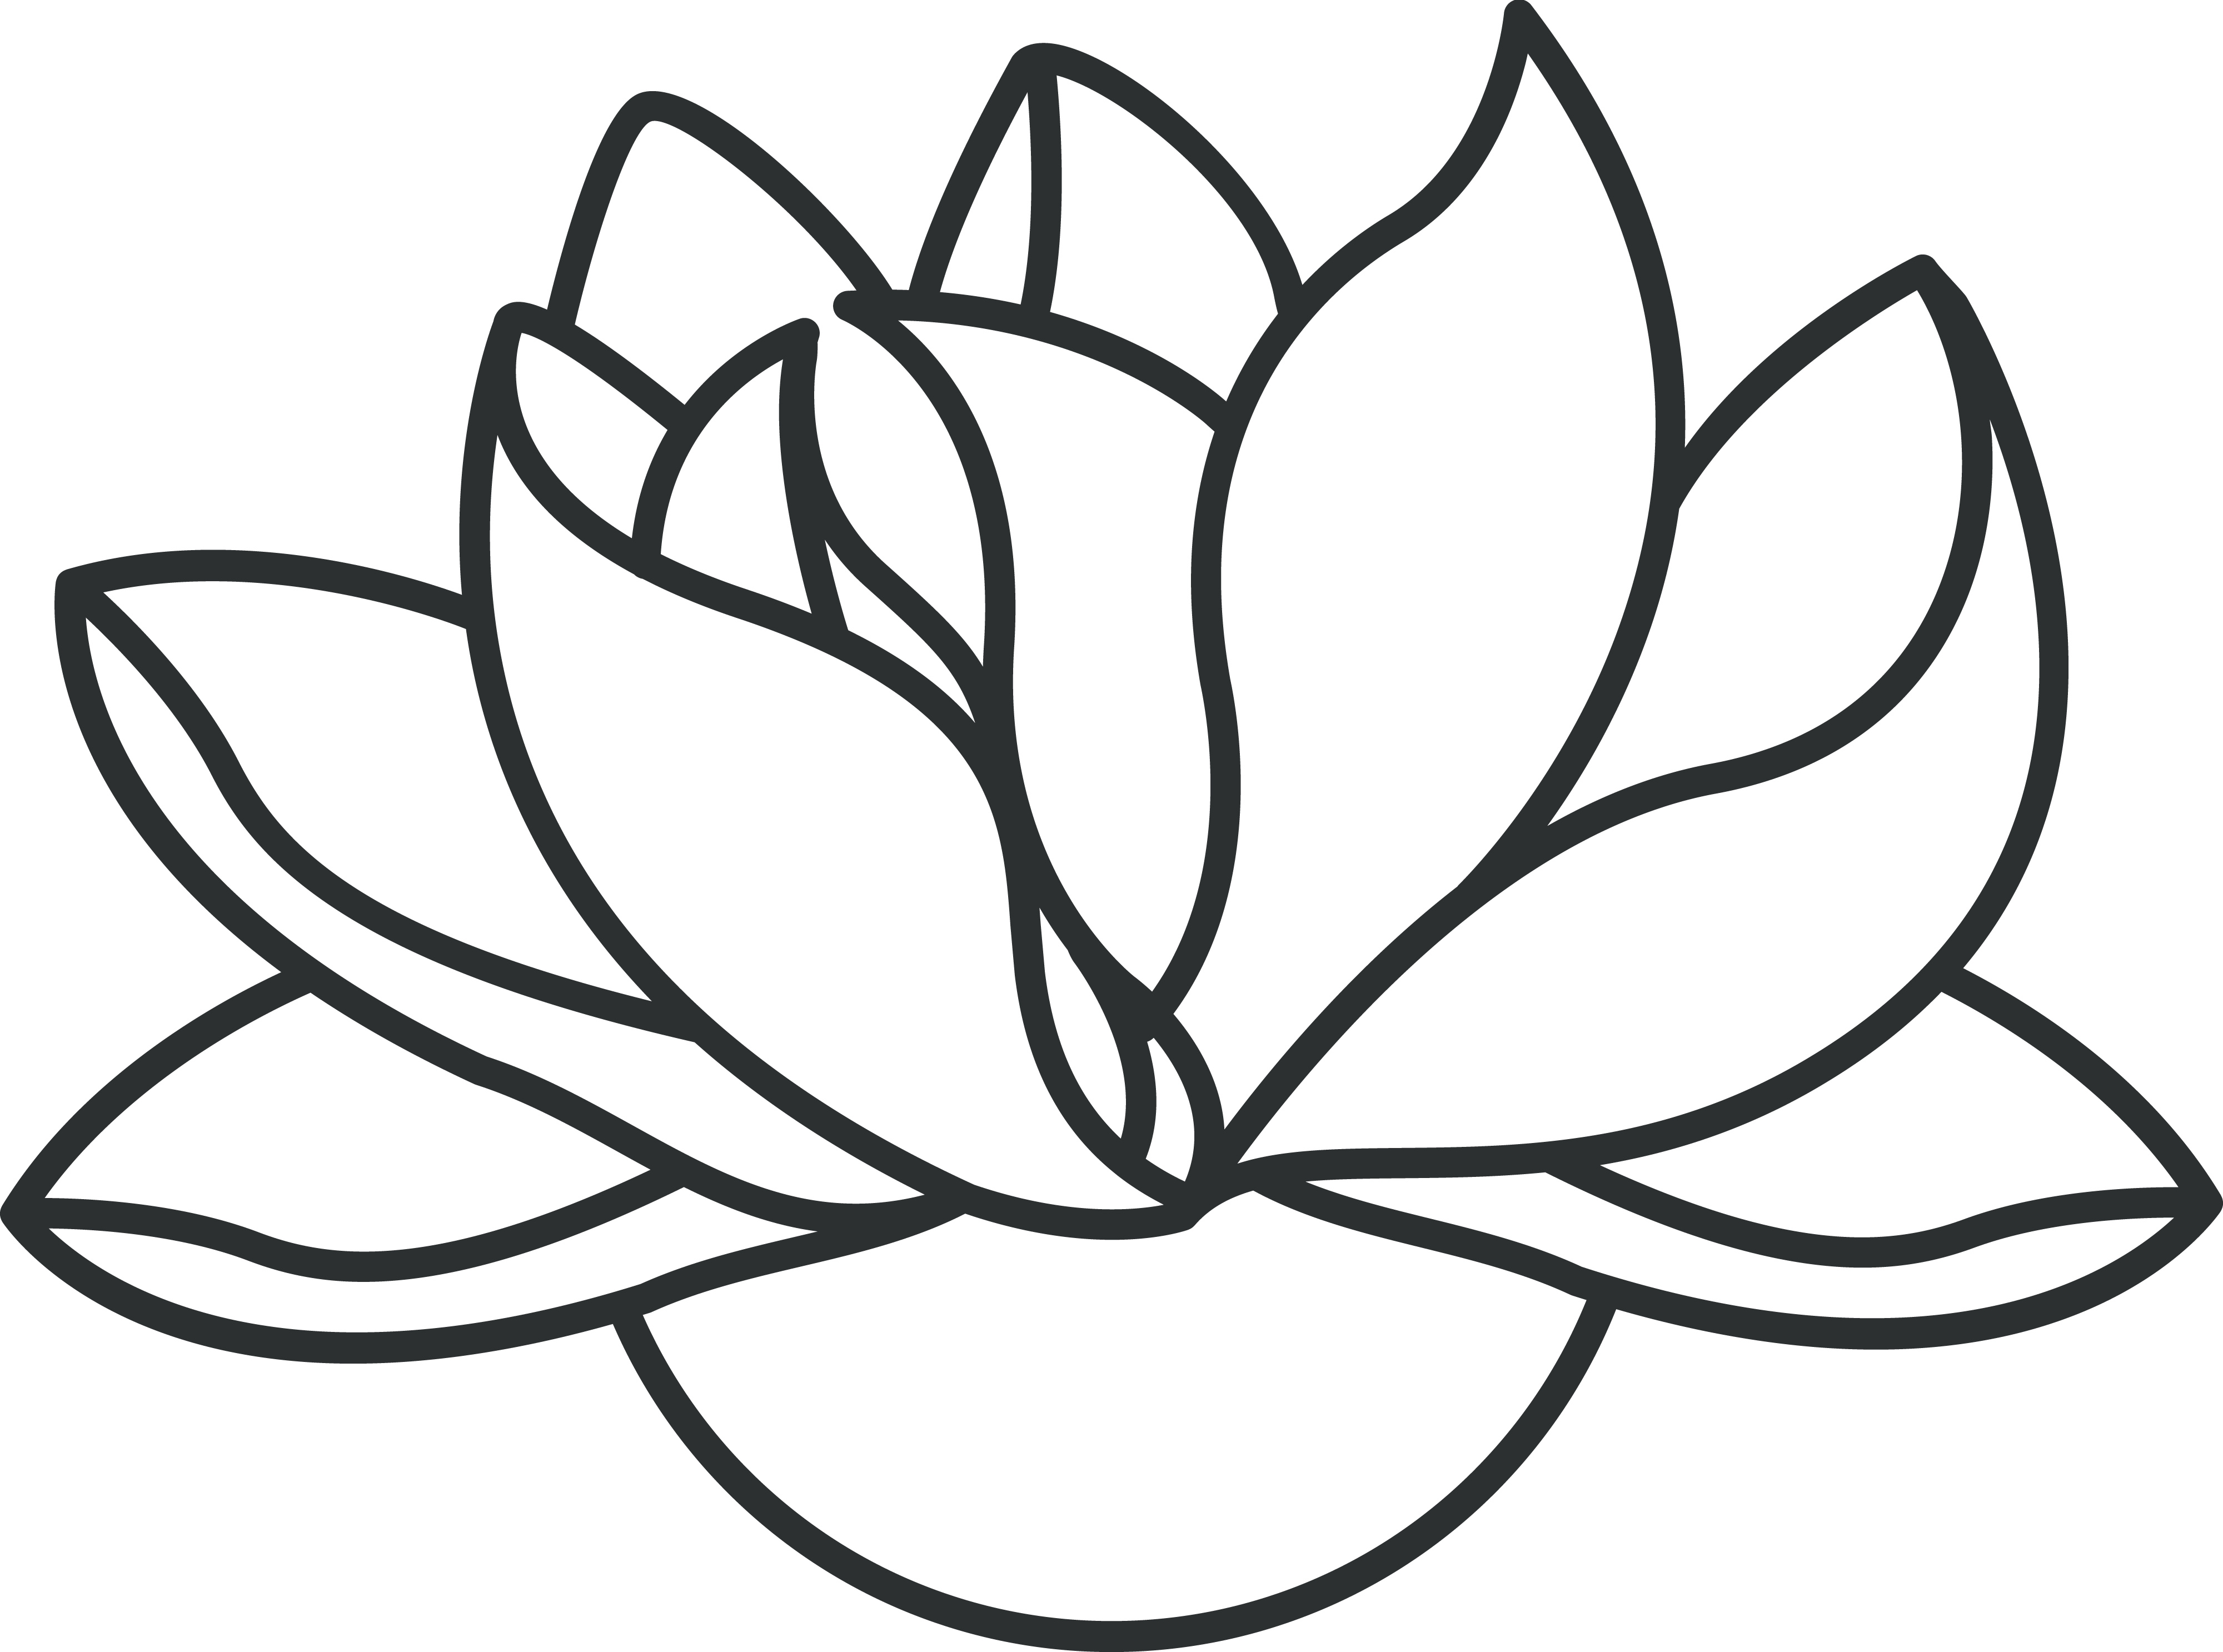 Flower line drawing clip art free at getdrawings free for 4000x2973 lotus flower drawing jpg image lotus flower line drawing free izmirmasajfo Images